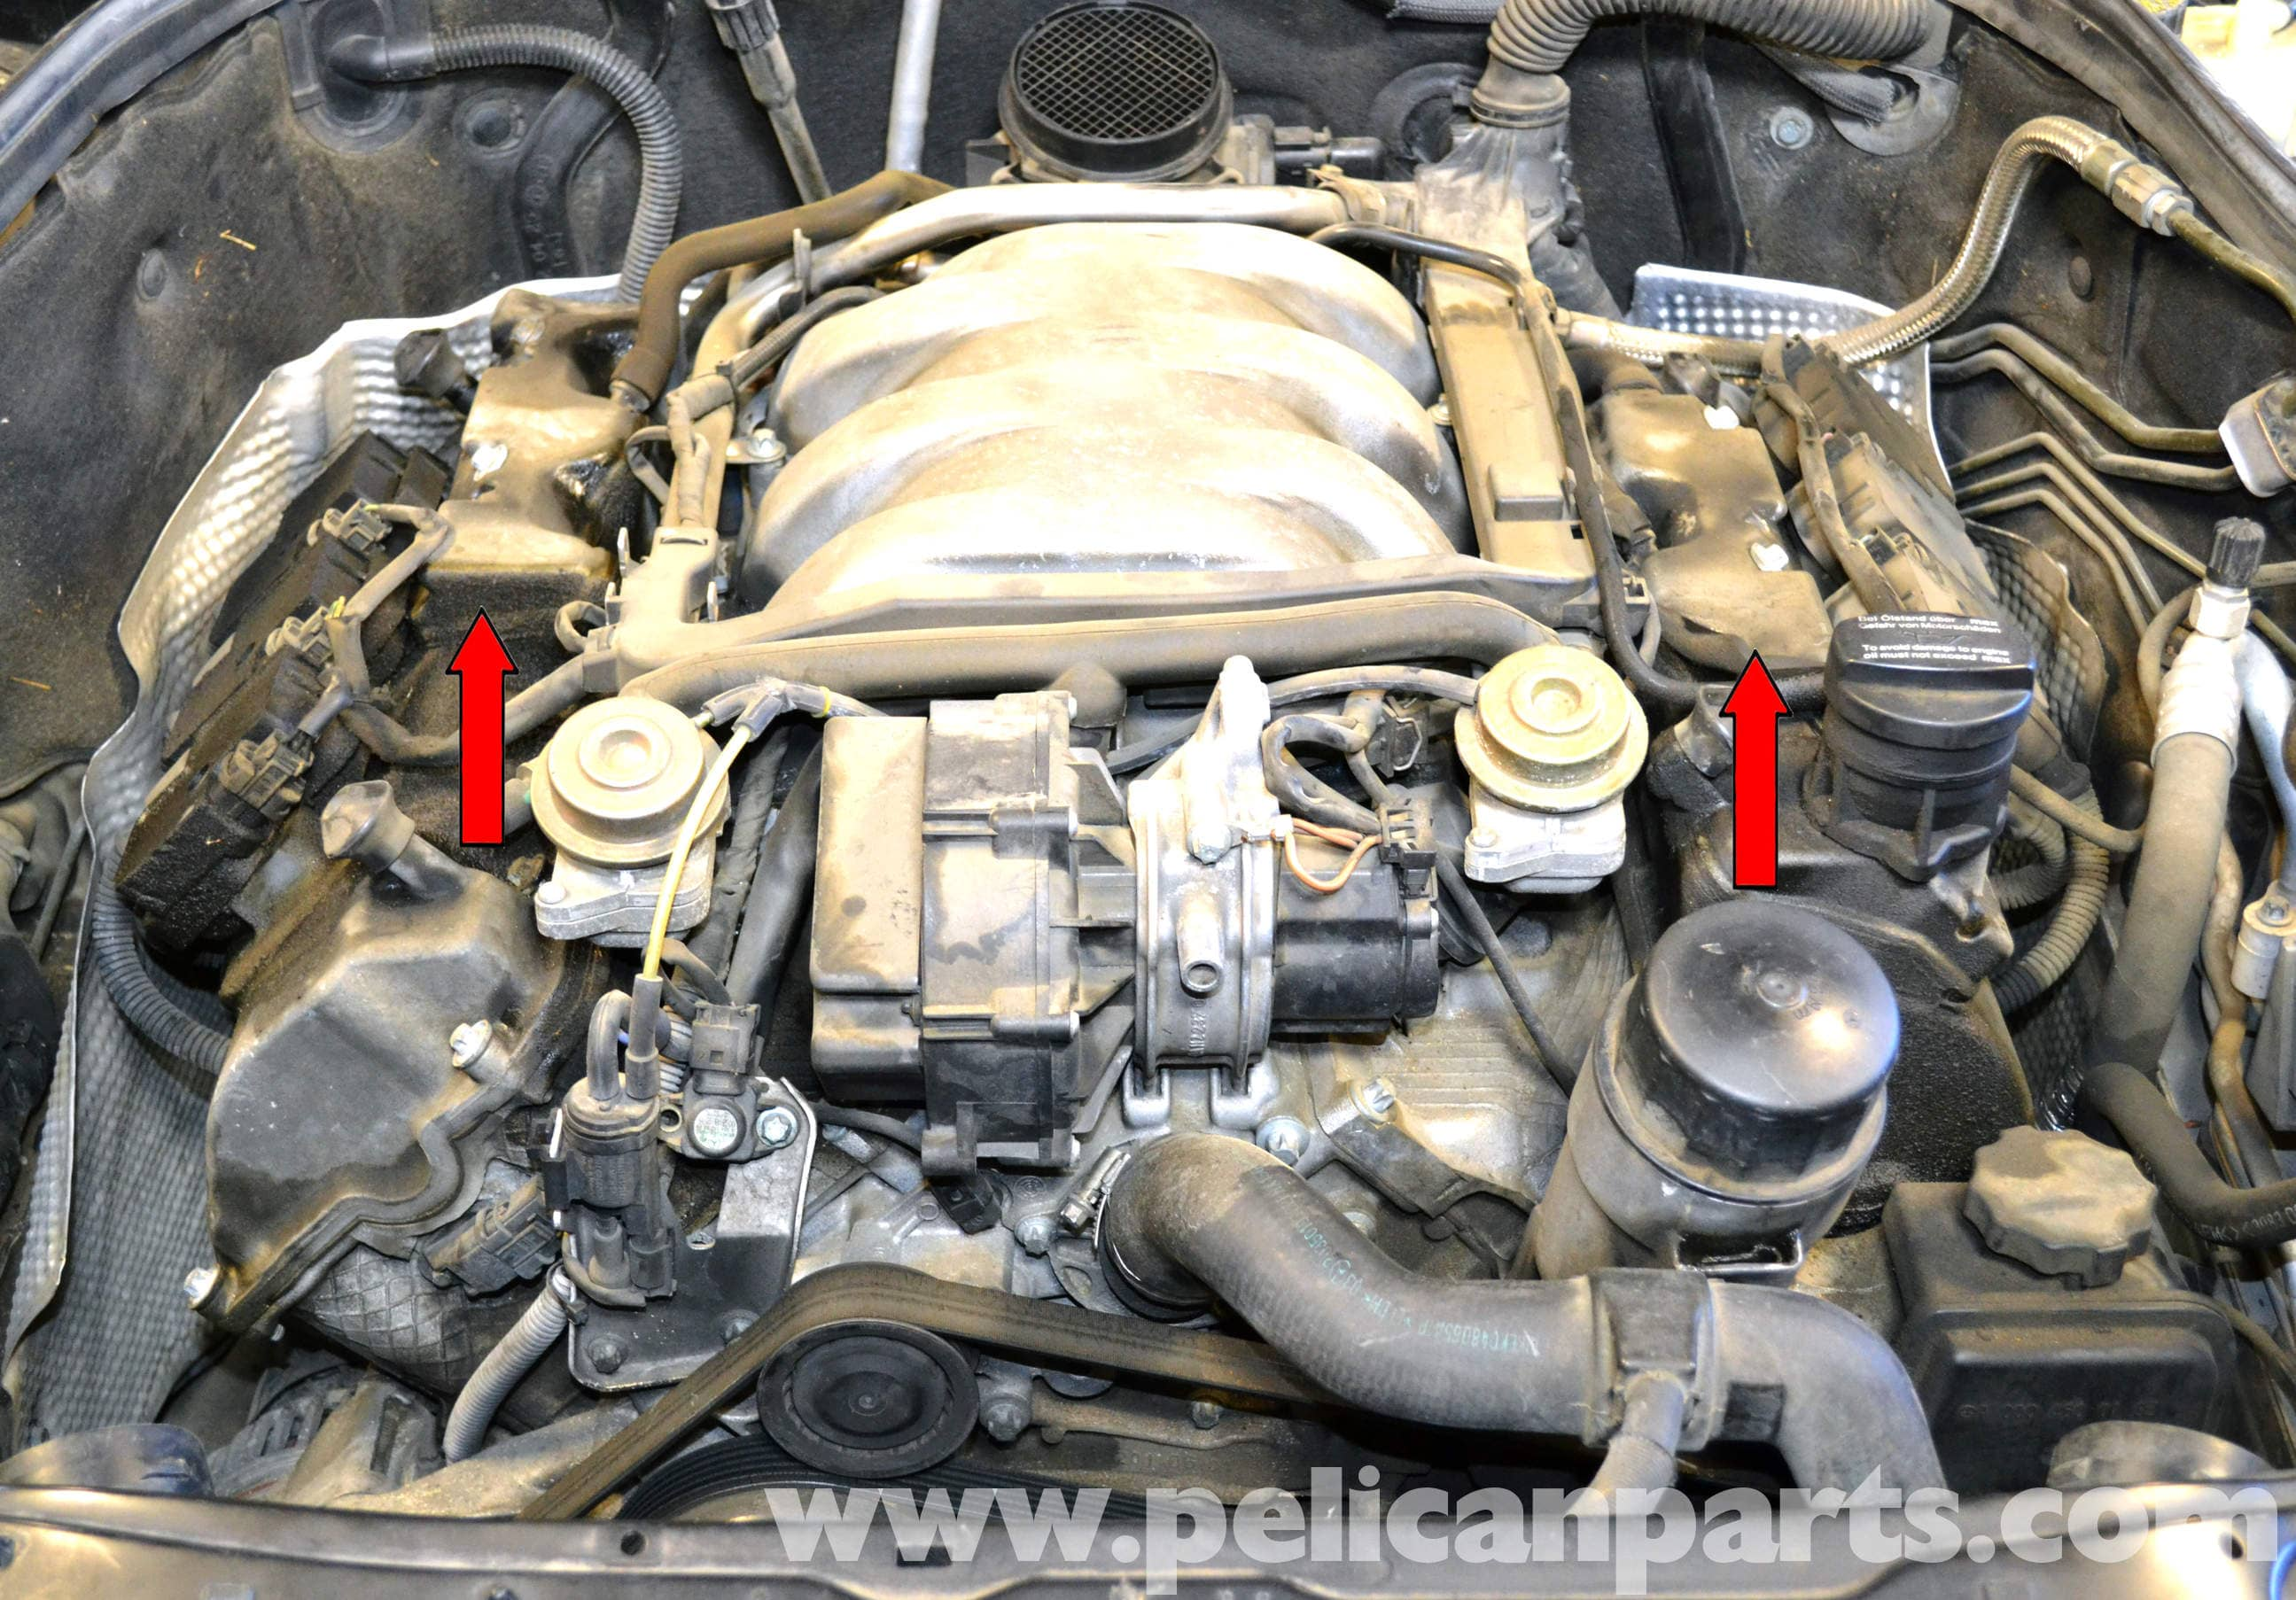 pic07 s430 engine diagram 2000 wiring diagrams instruction 1998 ML320 Fuse Box Info at gsmportal.co